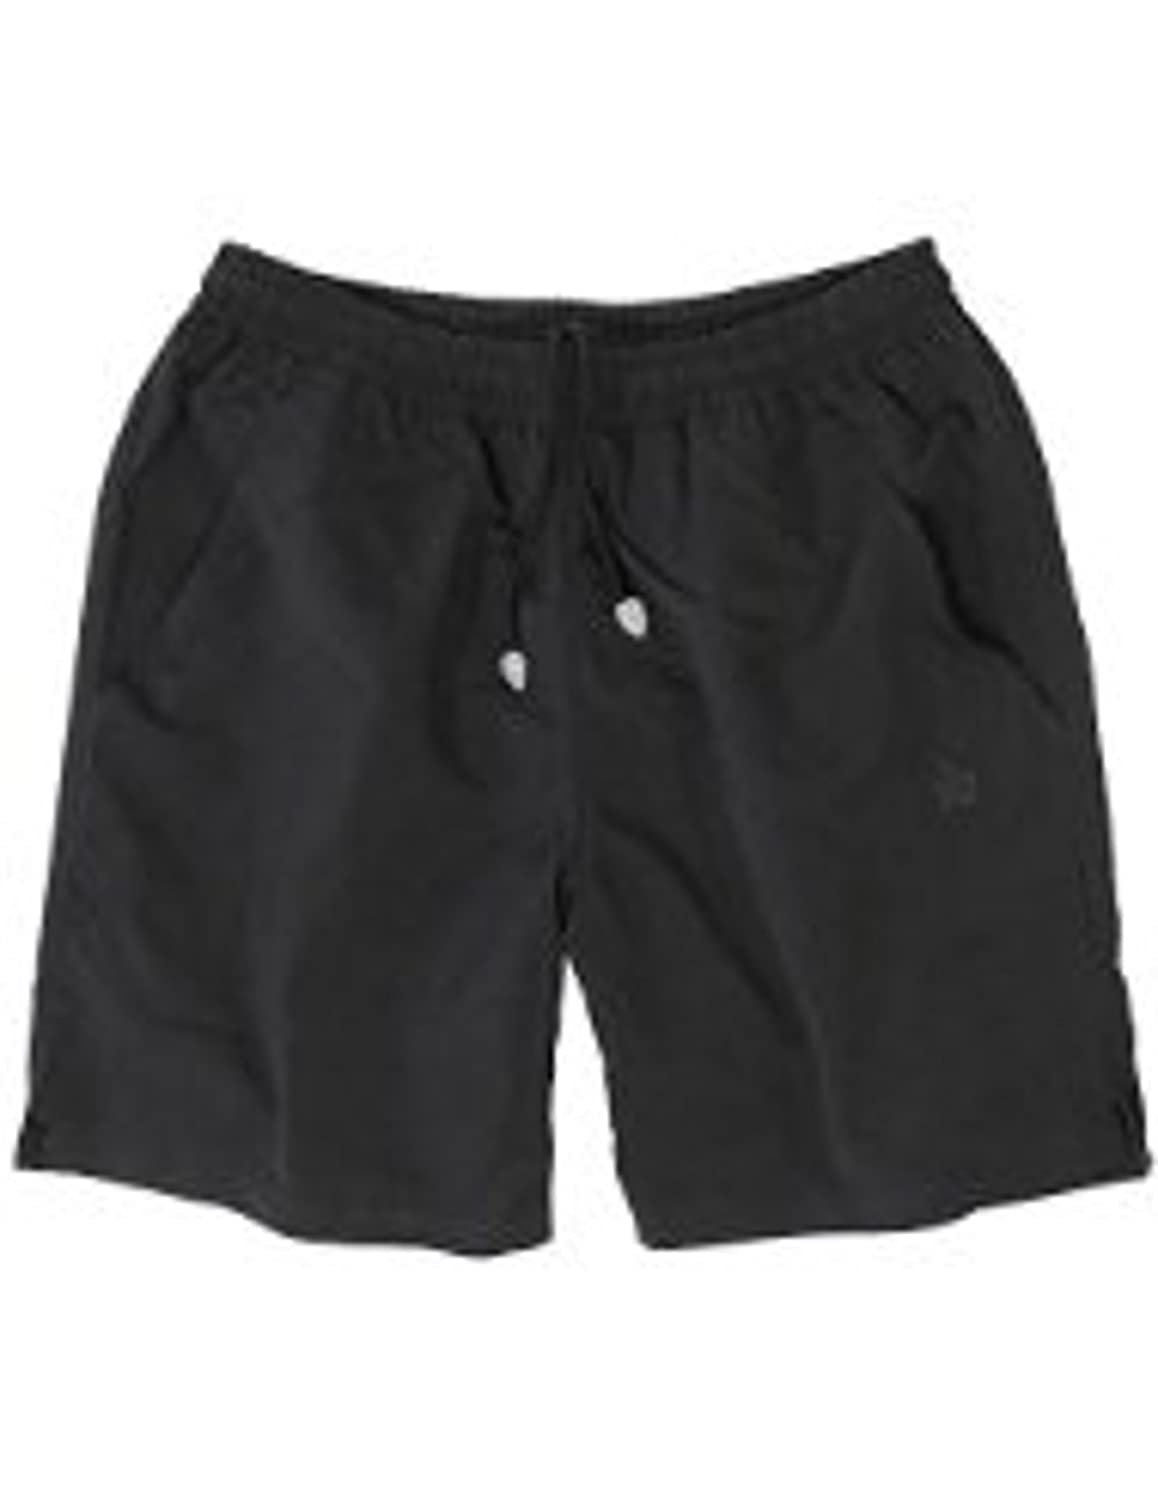 Ahorn Sporty Shorts Black Men's Plus Size